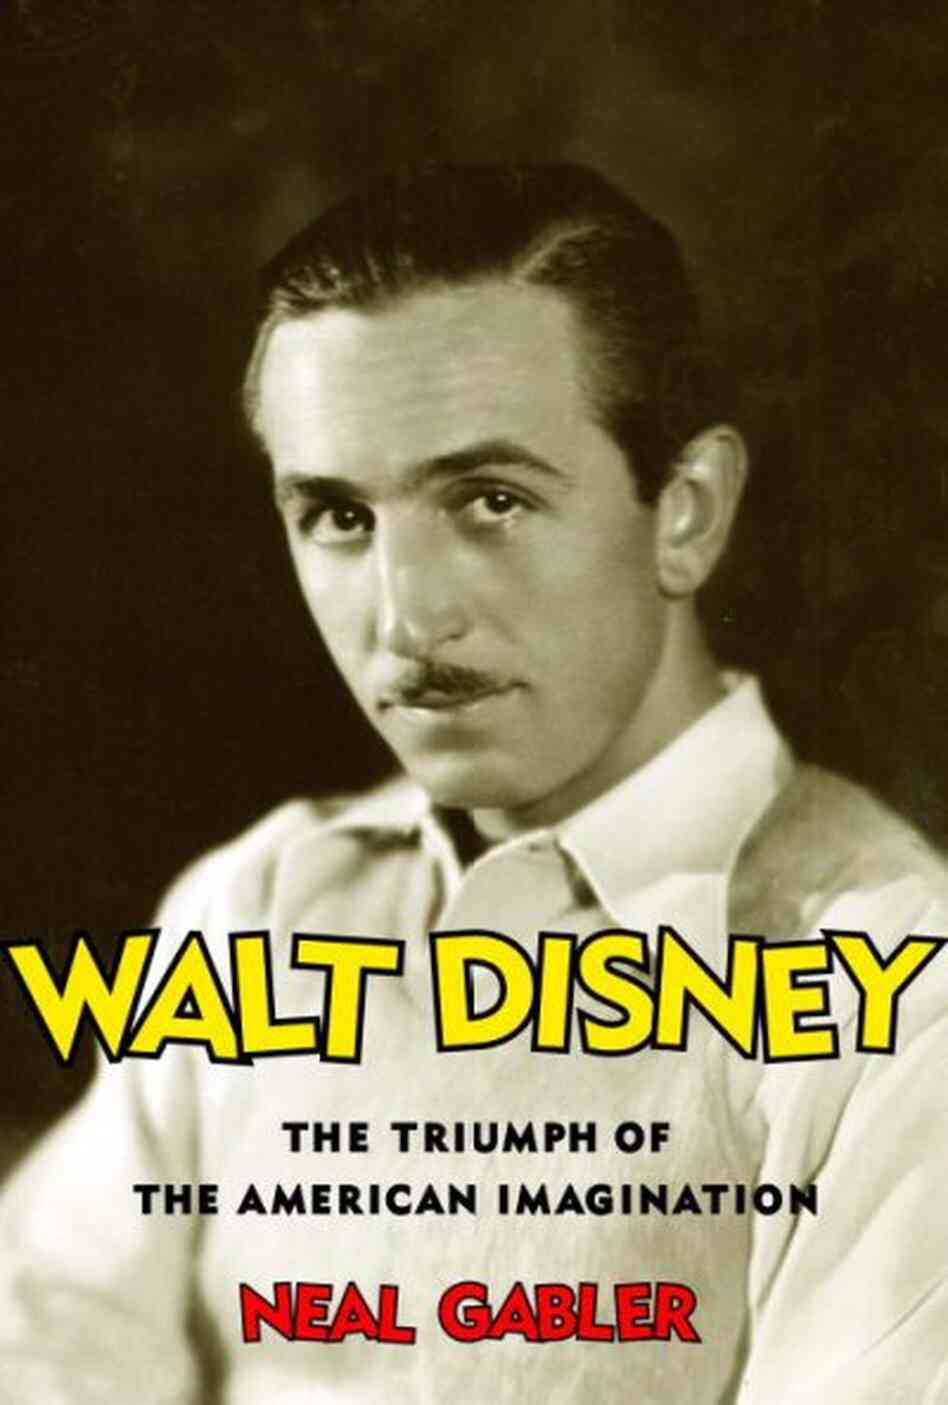 a biography of walt disney Walter elias disney was born on december 5, 1901 in chicago, illinois, the son of flora disney (née call) and elias disney, a canadian-born farmer .